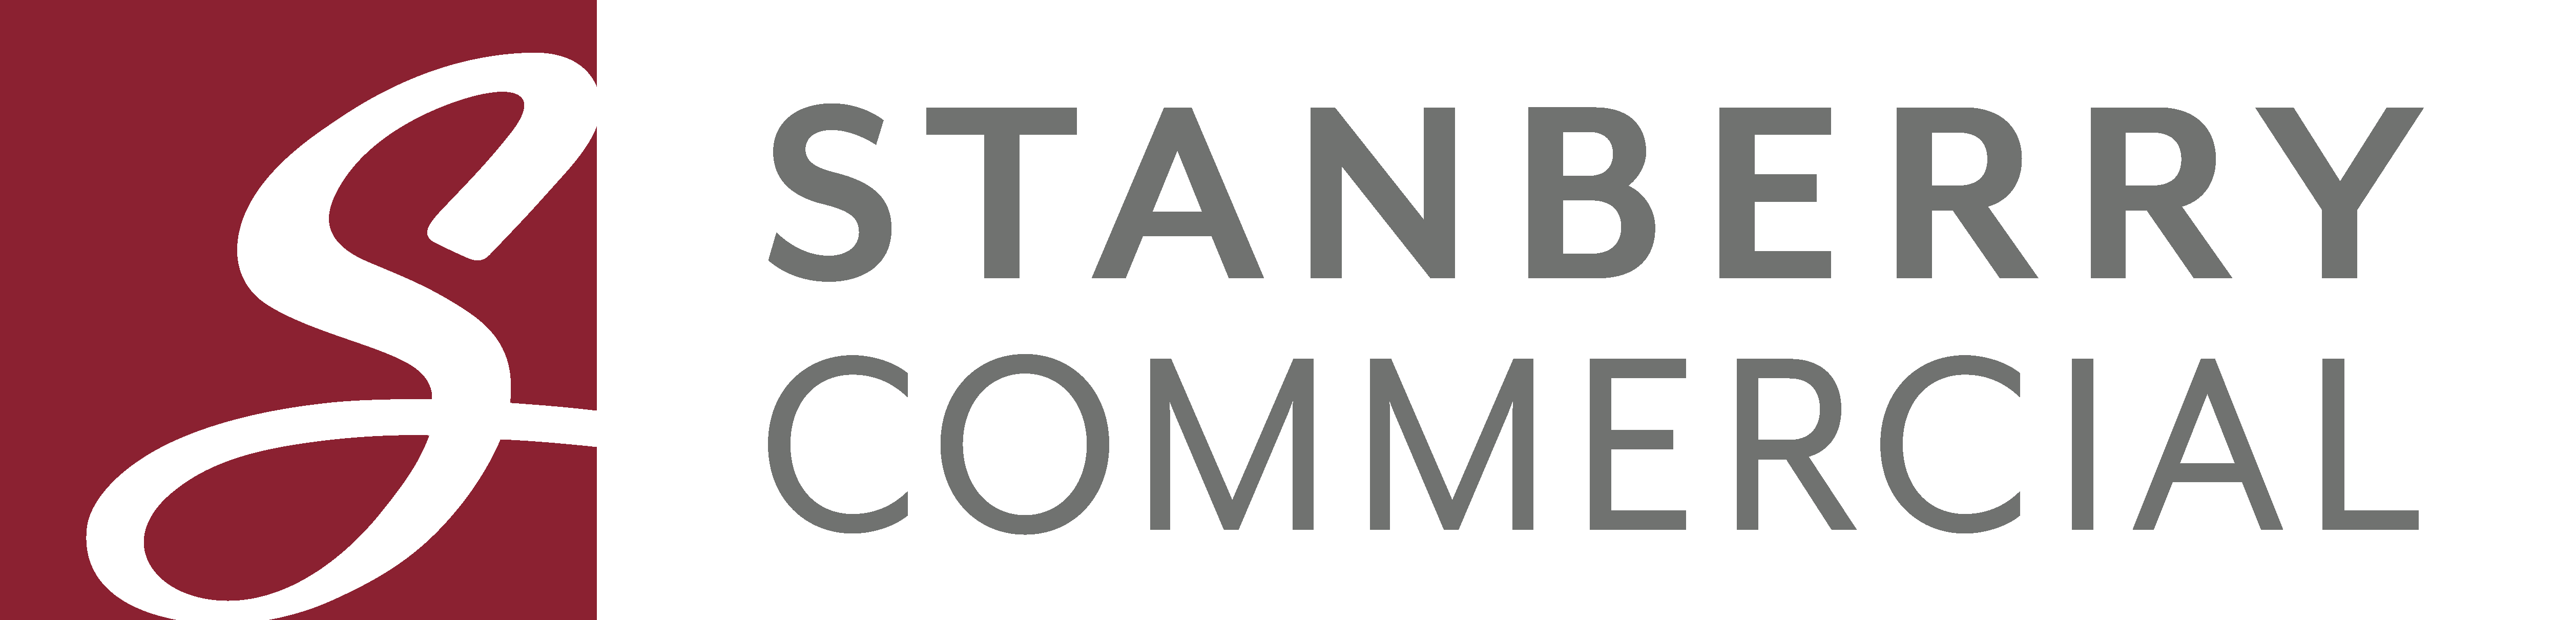 StanberryCommercialLOGO.png